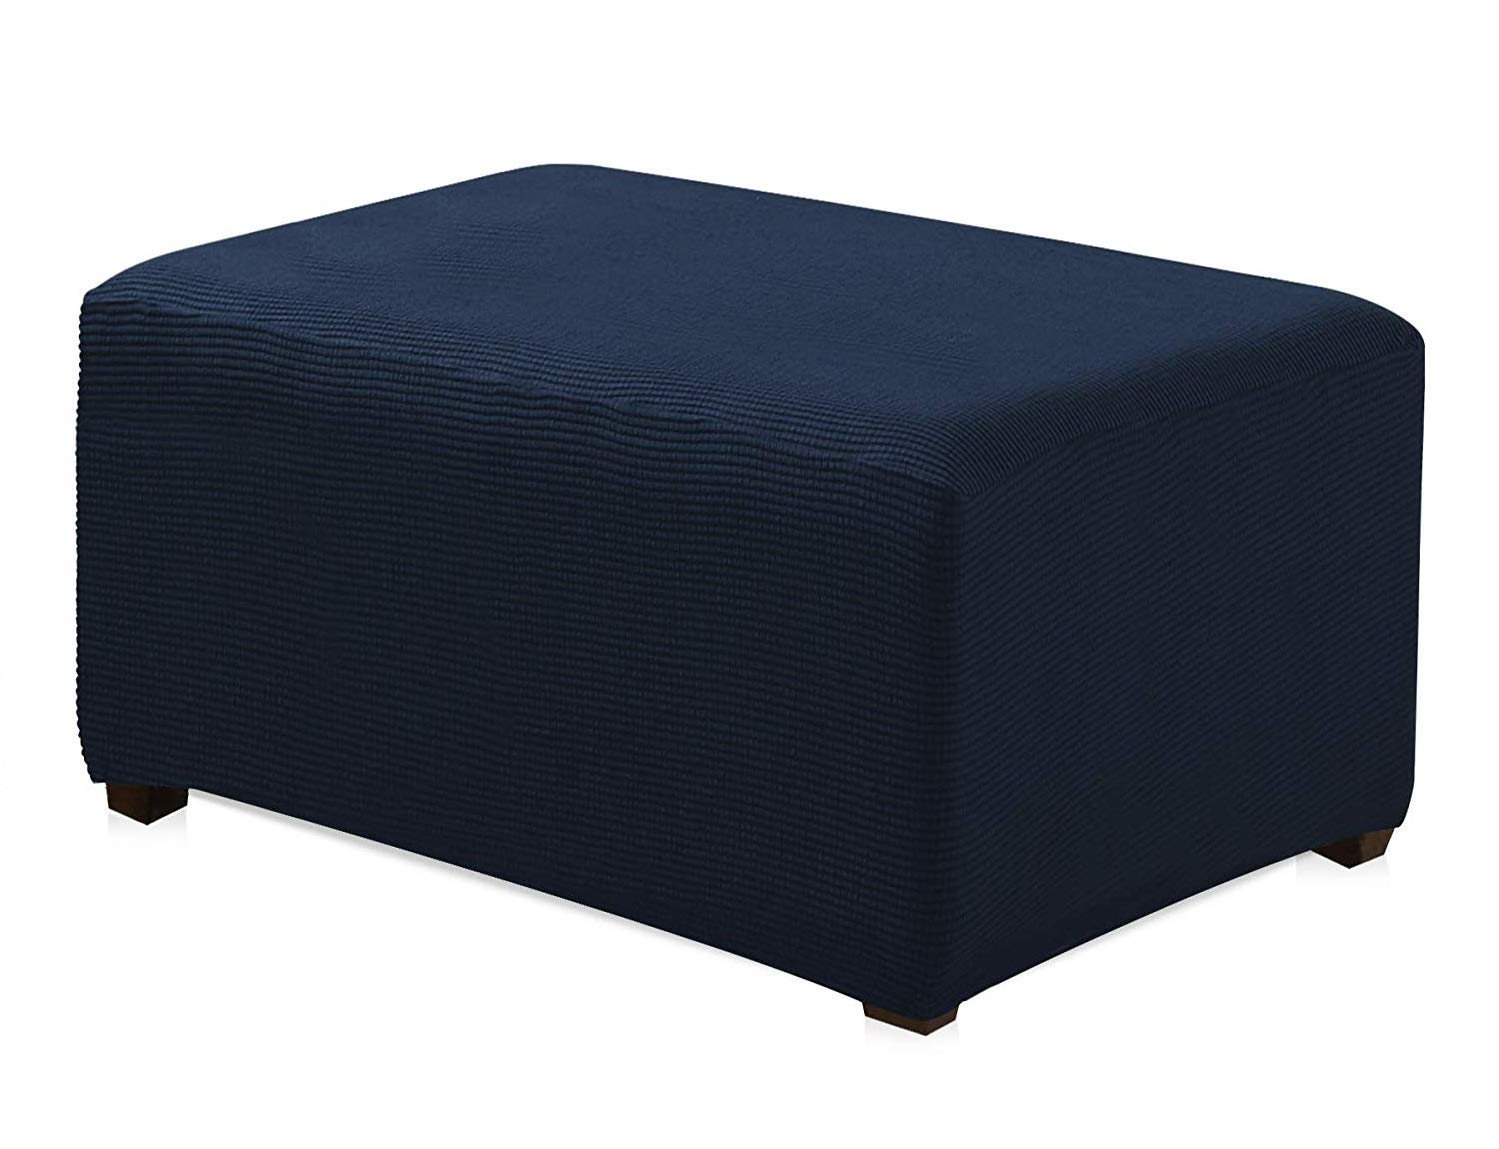 Orly's Dream Spandex Pique Stretch Fit Rectangle Storage Ottoman Furniture Cover Slipcover (Navy Blue) Orly'sDream